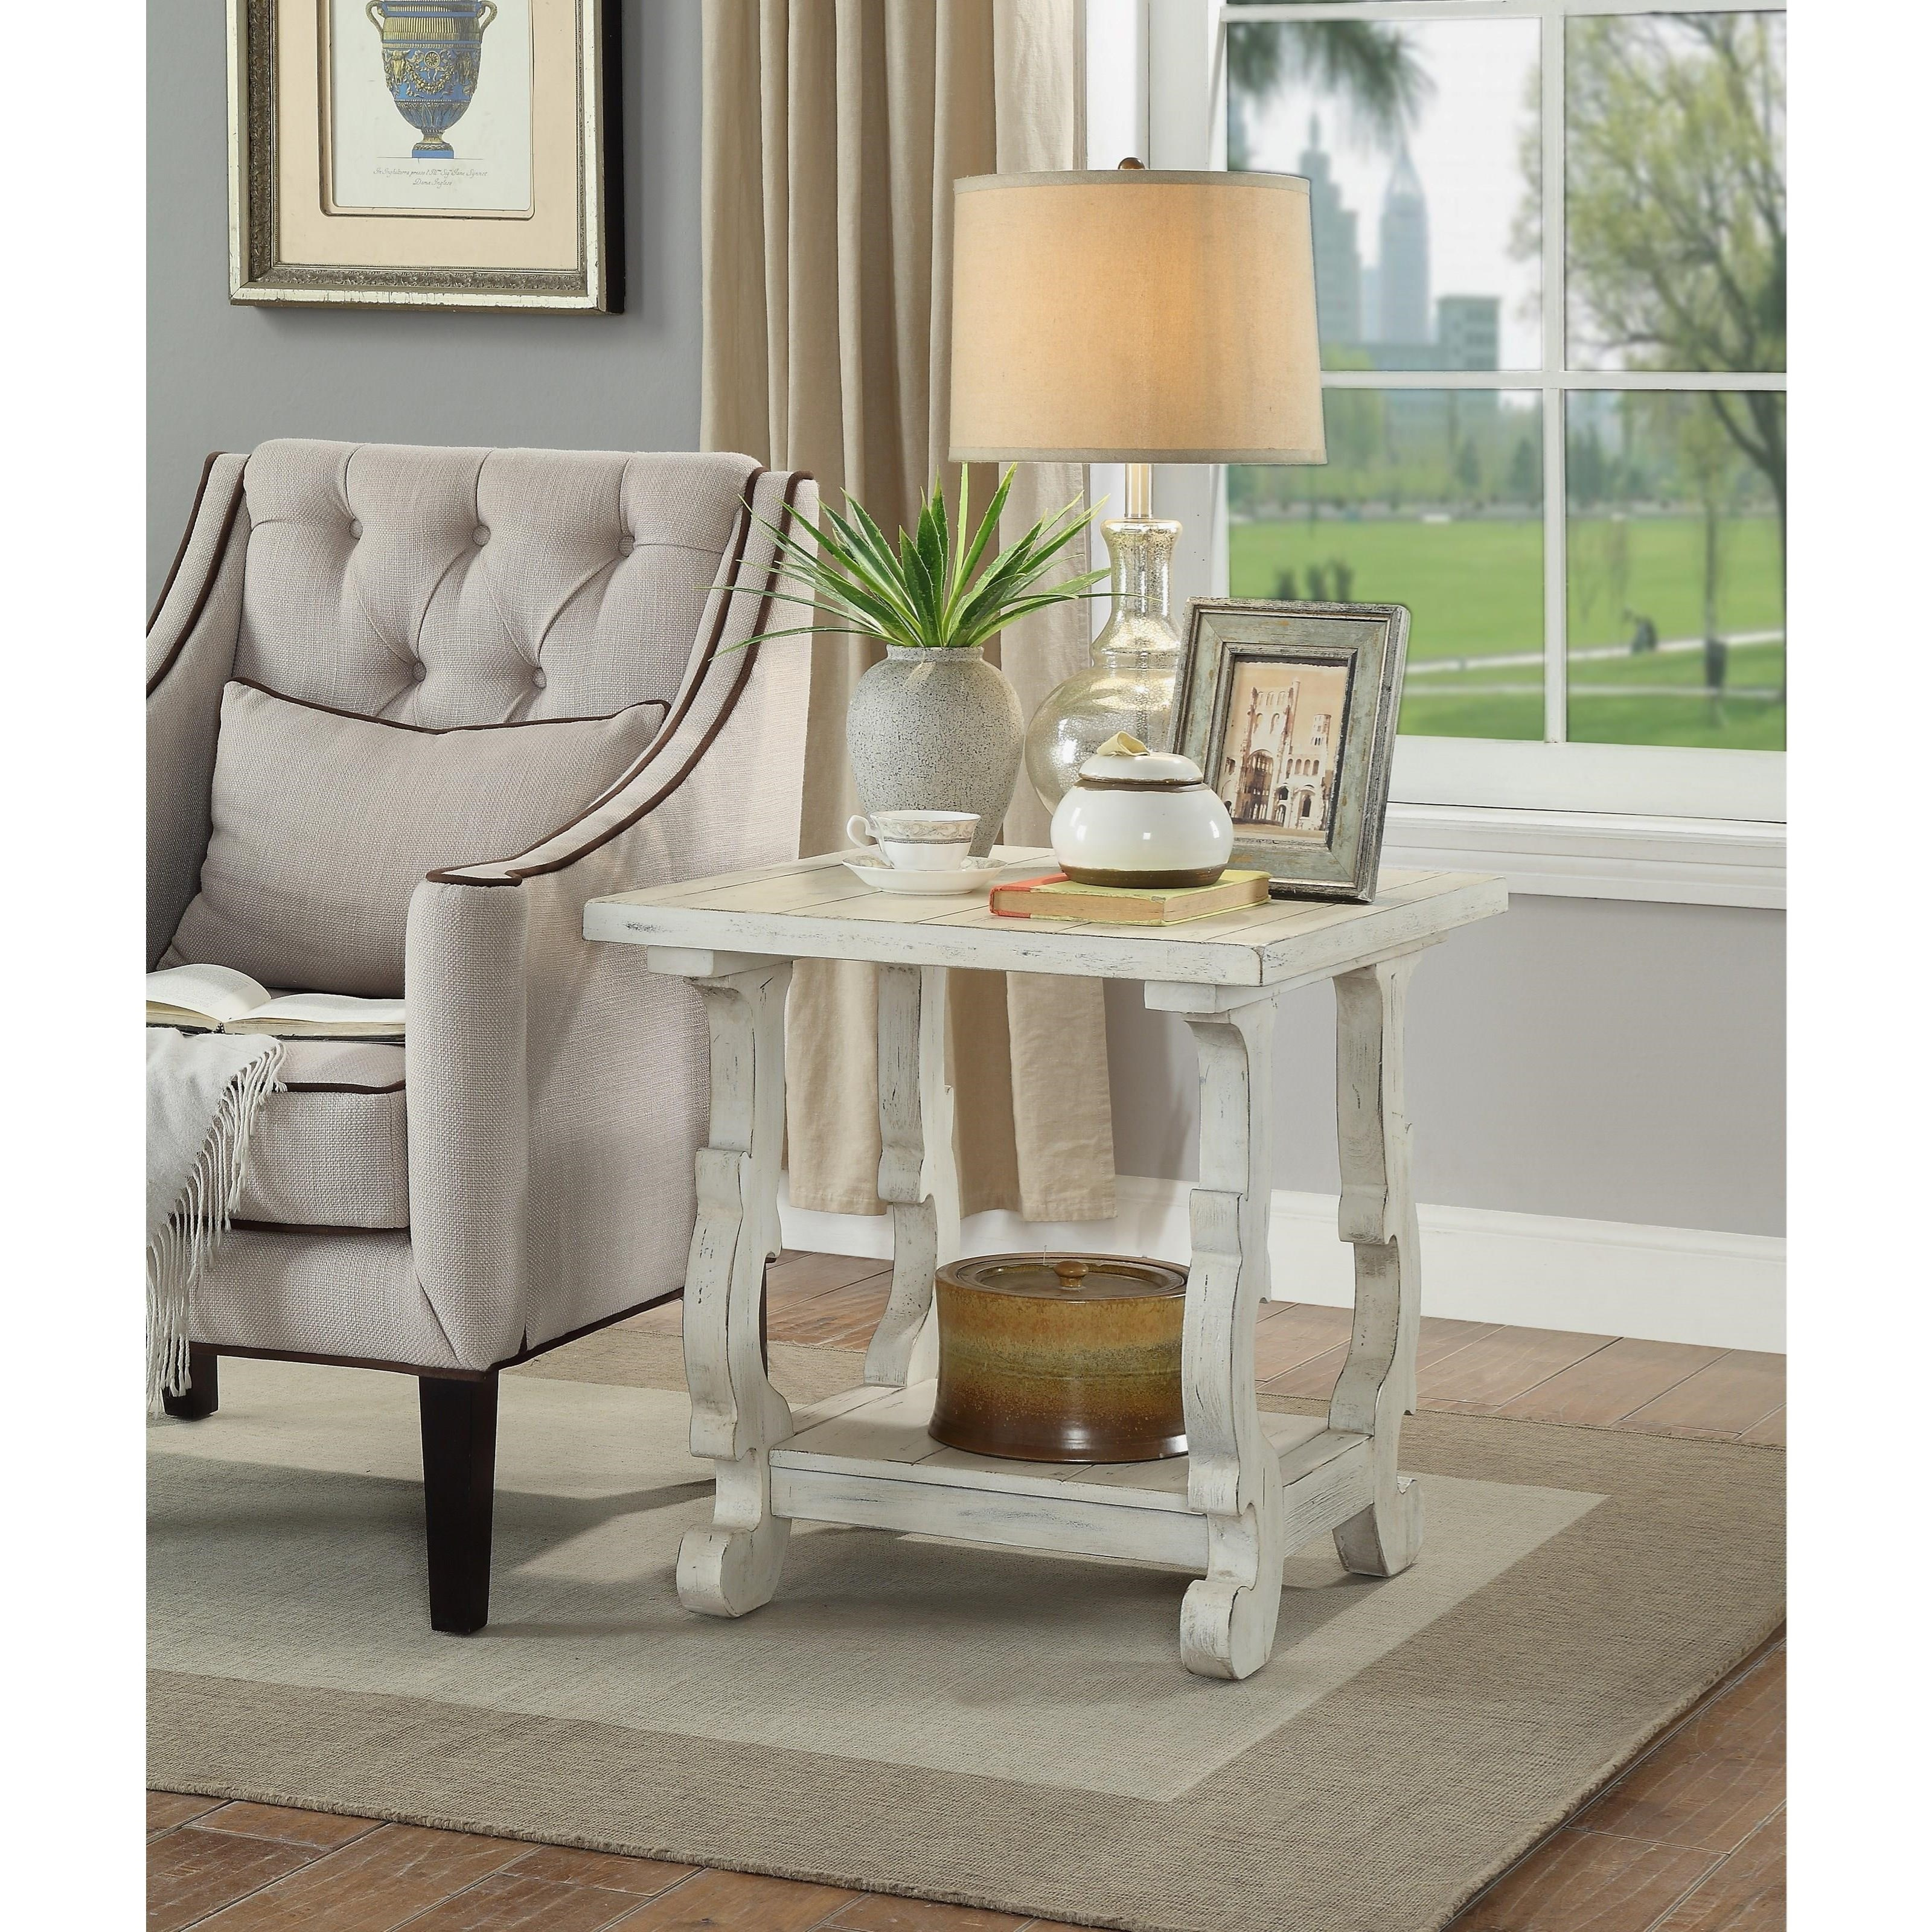 Orchard Park Orchard Park End Table By Coast To Coast Imports